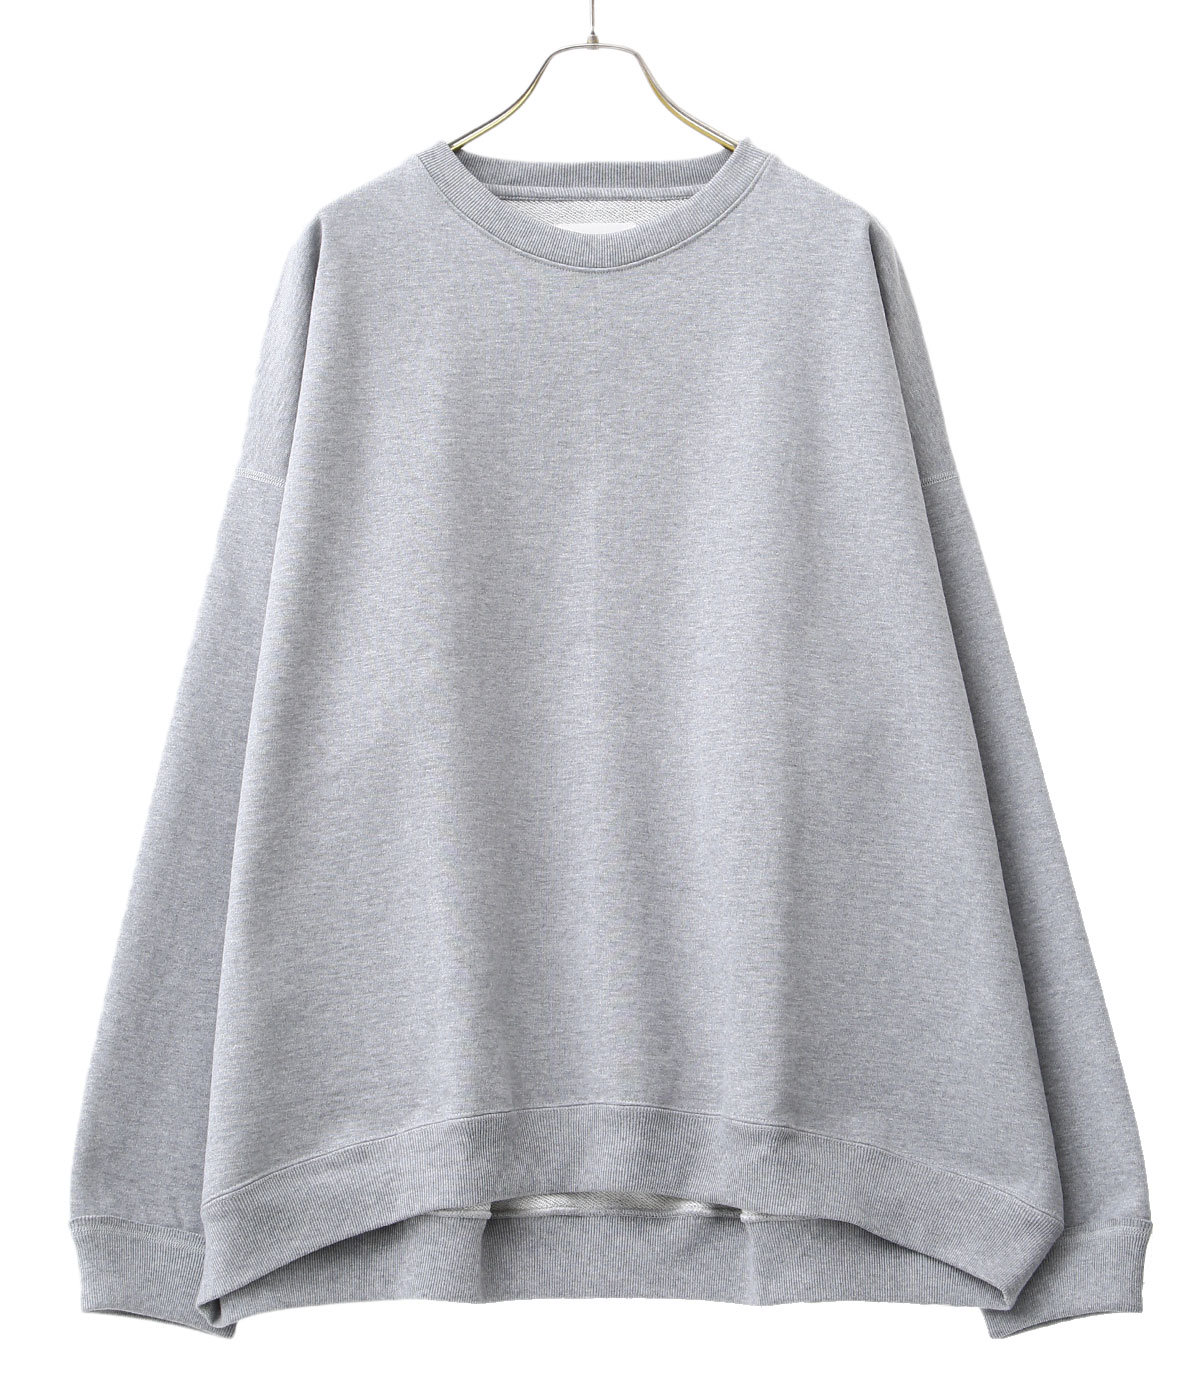 HUGE SWEAT SHIRT